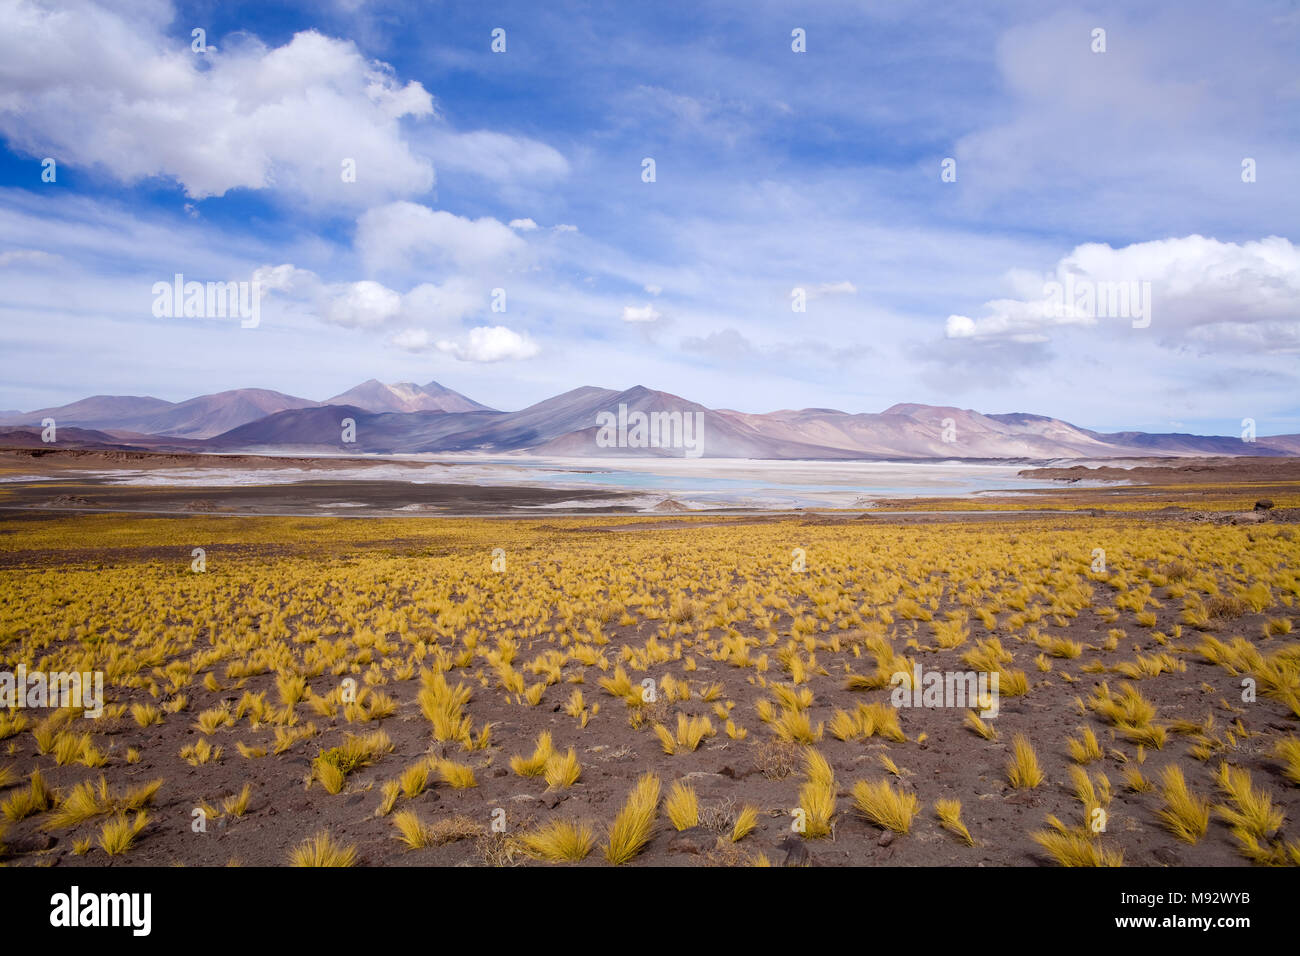 Salar de Aguas Calientes (Spanish for Hot Waters Salt Lake) and lagoon in the Altiplano (high Andean plateau) over 4000 meters over the sea level Stock Photo